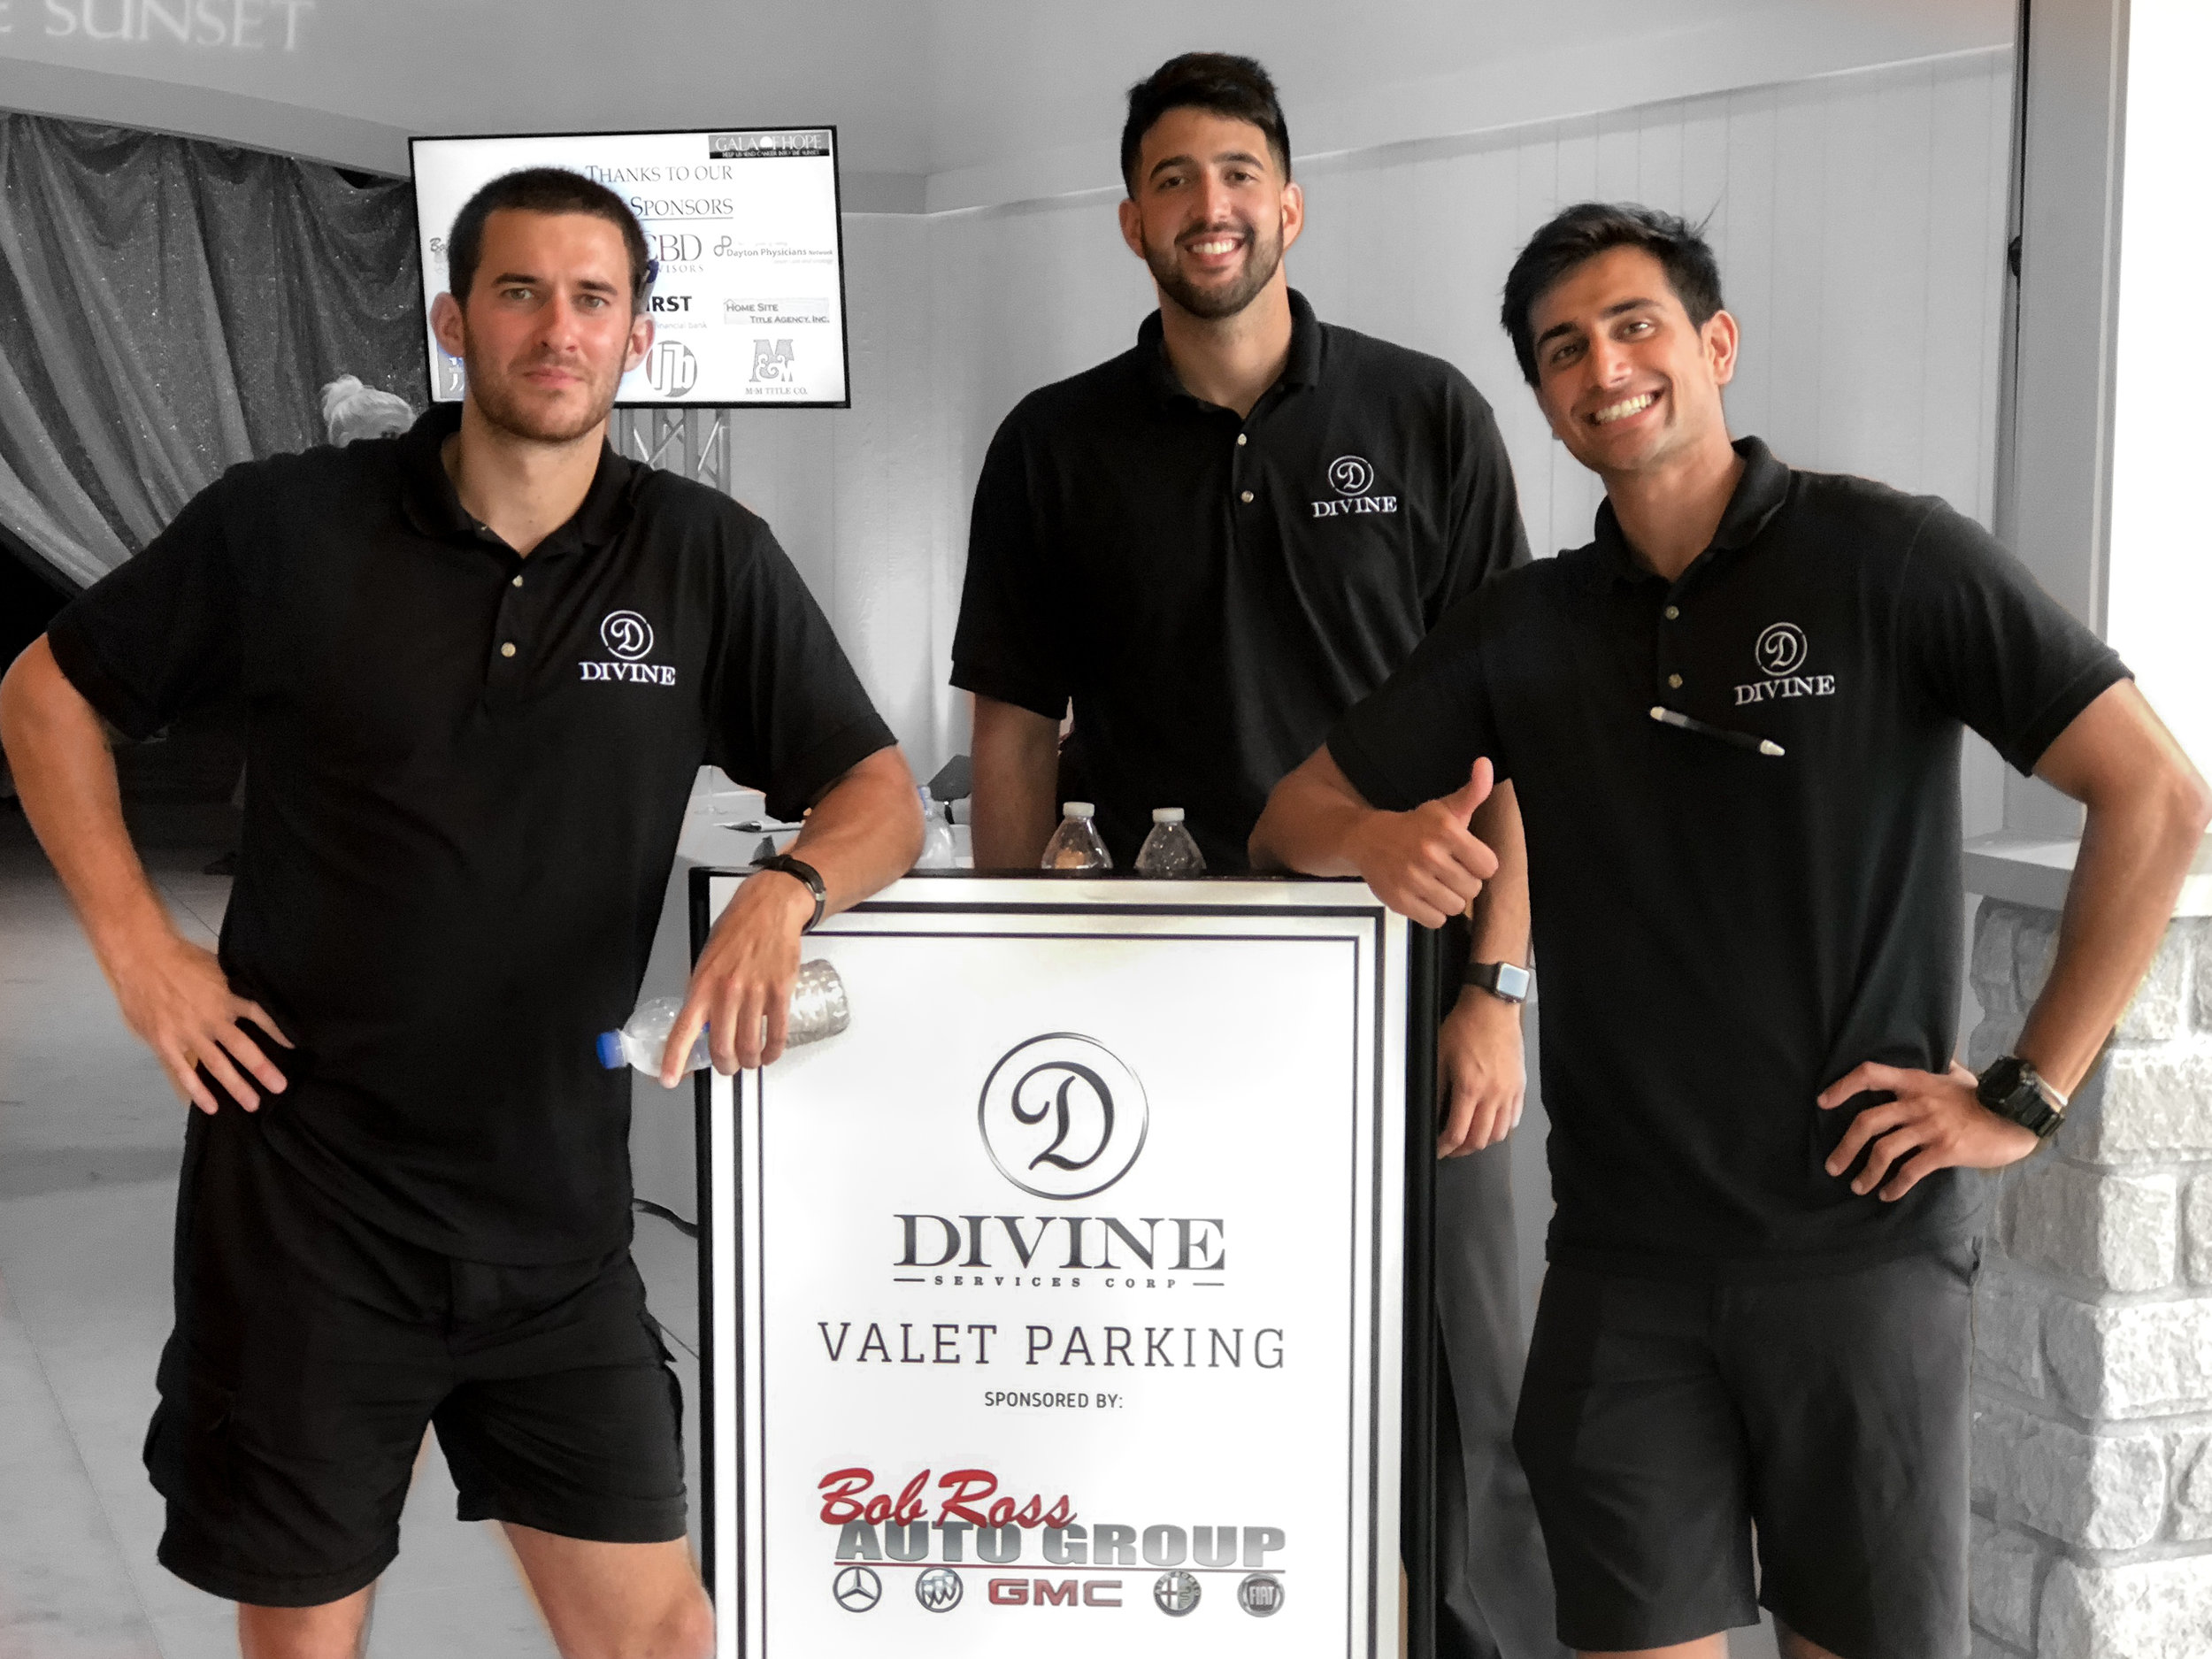 Custom parking solutions to fit your business' needs - Divine offers custom parking solutions for your business or event. We can help you give your guest the gift of stress free parking.Learn More About Our B2B Solutions ➝